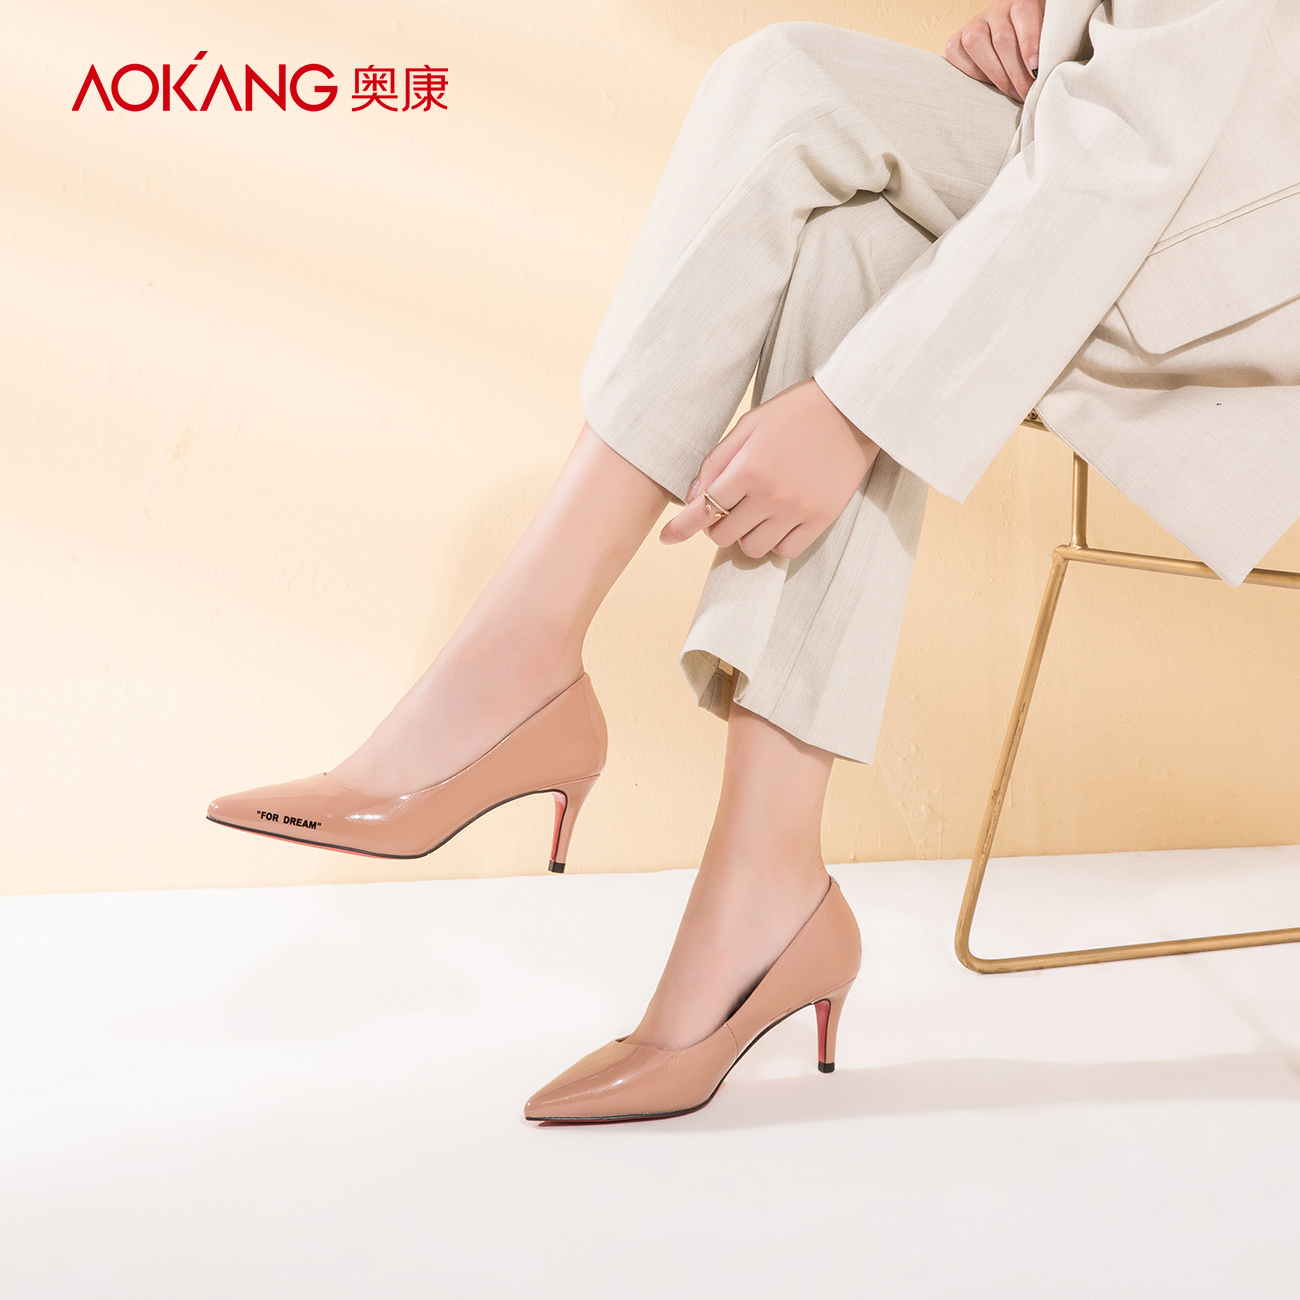 Aokang women's shoes 2018 autumn new products high heel pointed elegant professional set foot shallow mouth fashion commuter shoes